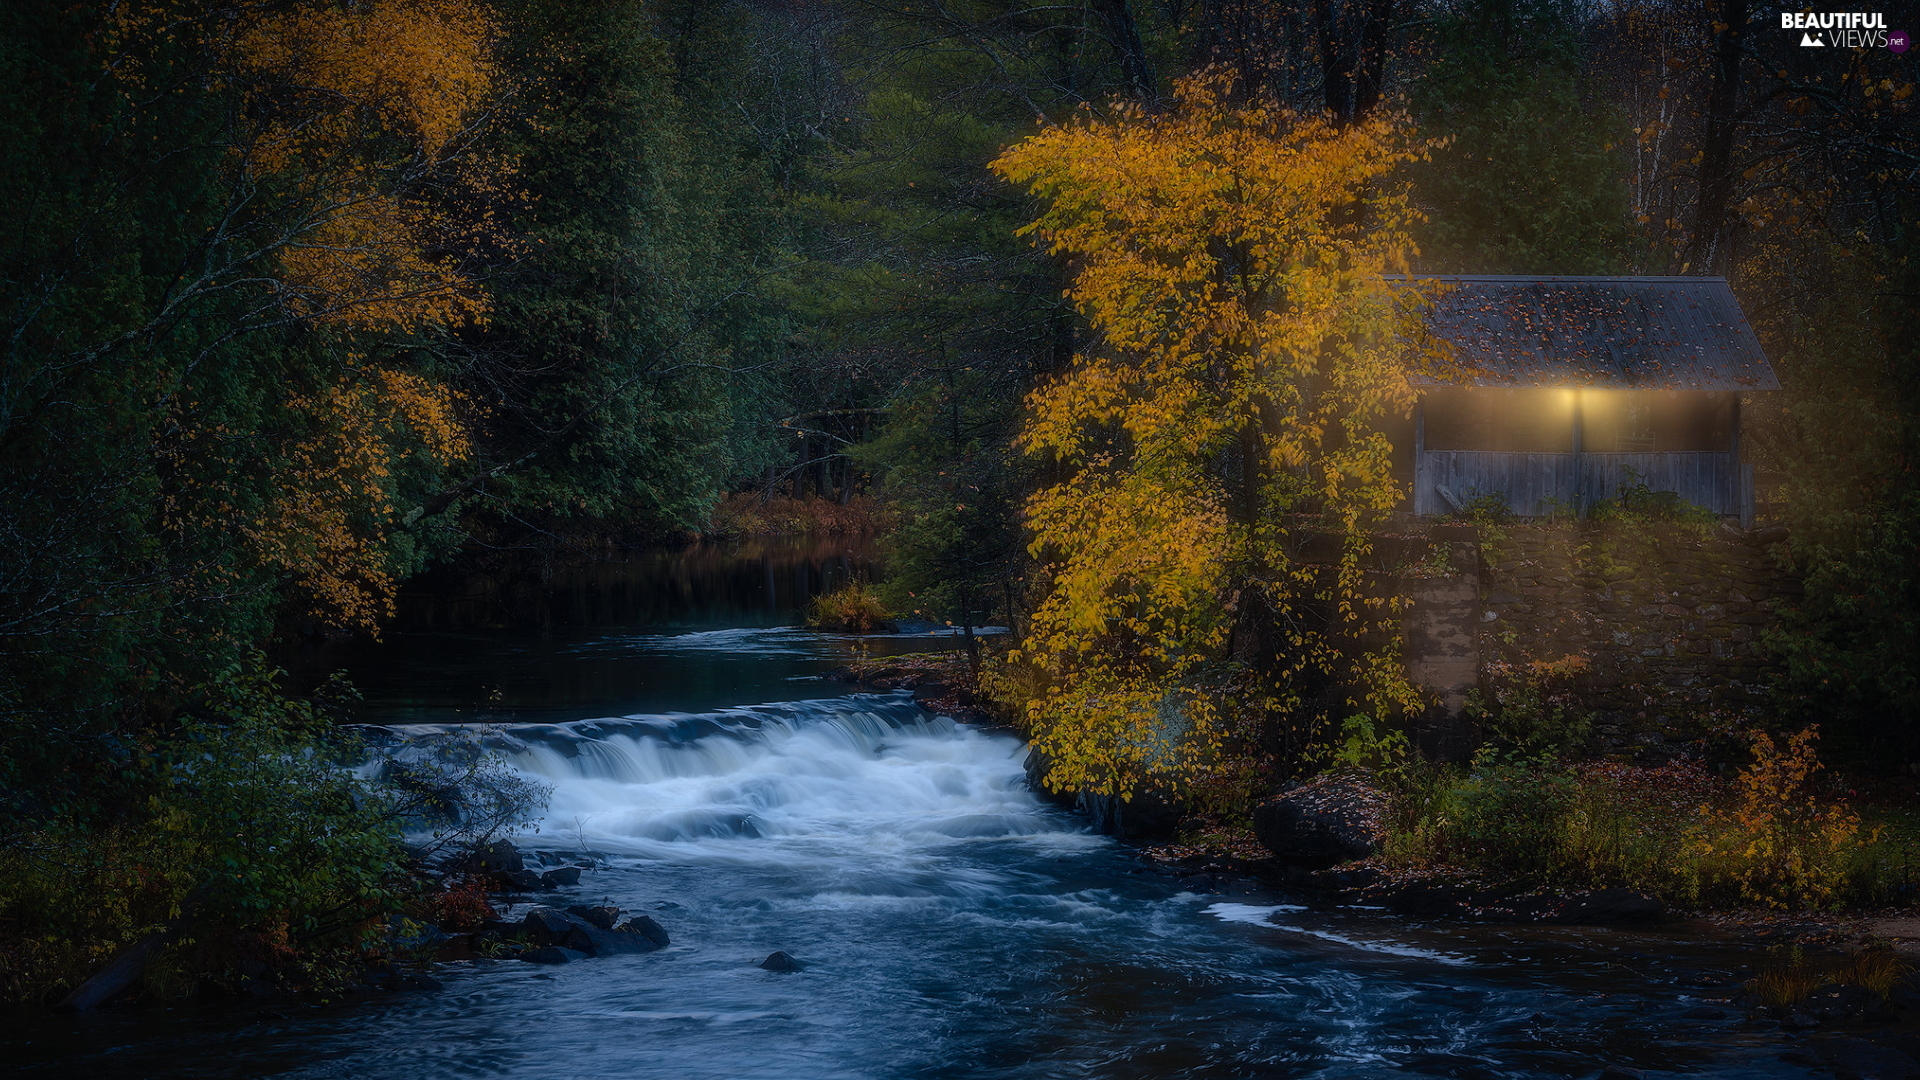 forest, trees, illuminated, viewes, autumn, River, arbour